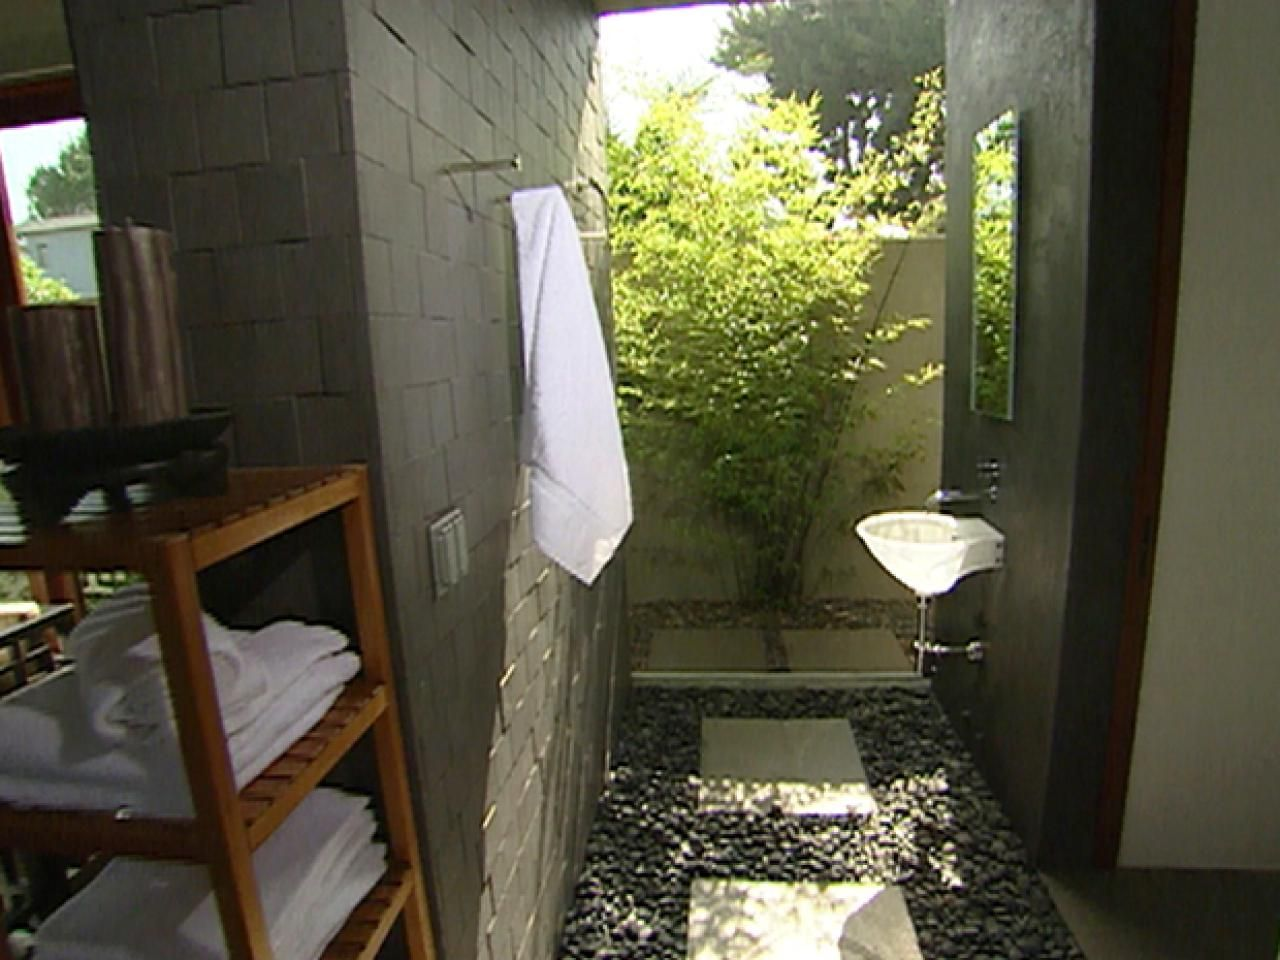 Inspiration Web Design HGTV shows you how East meets West in an innovative poolside bathroom design